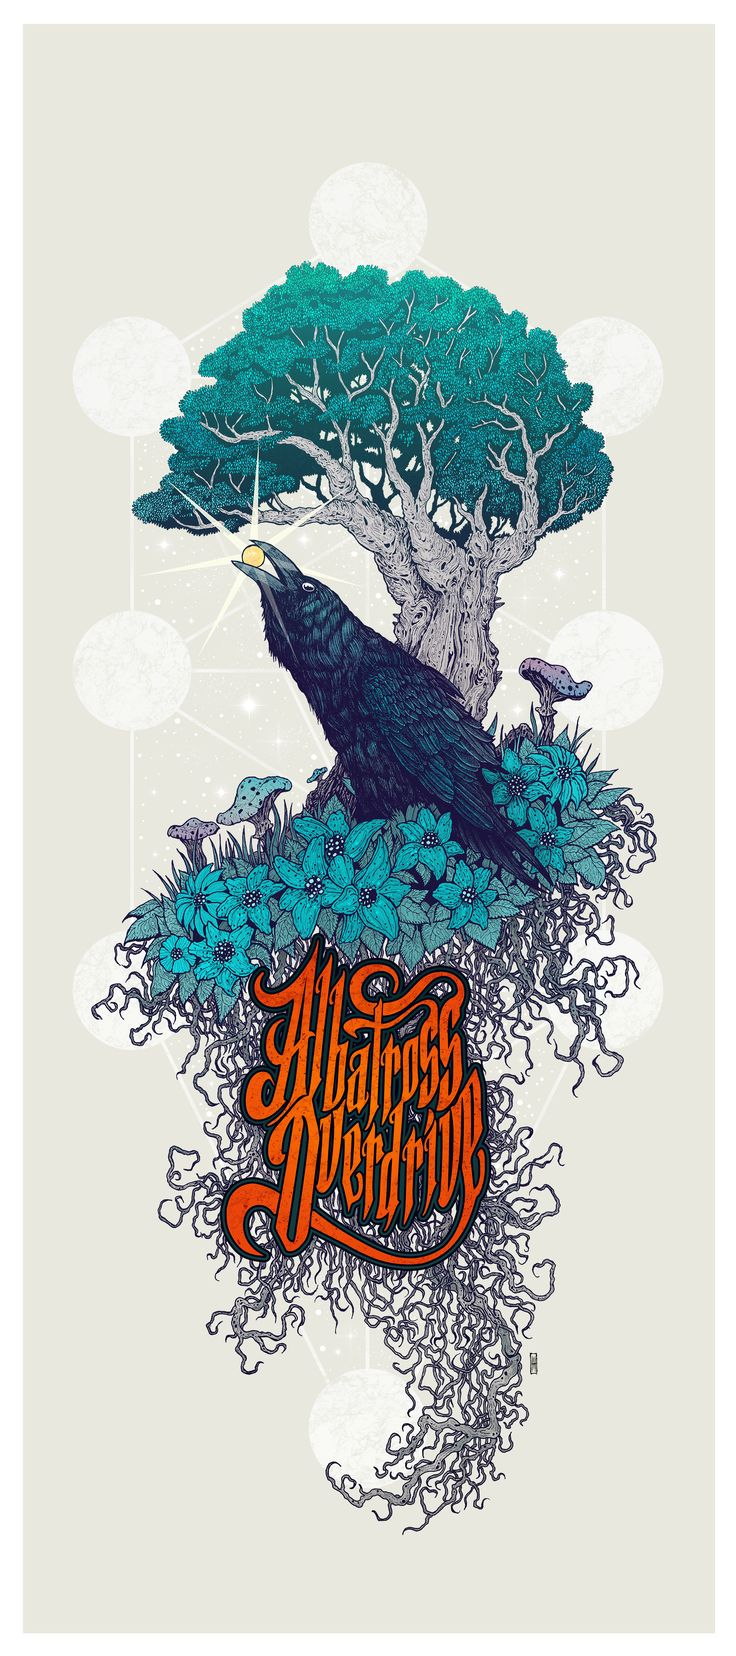 Albatross Overdrive (US) - band artwork -  color version #stonerrock #posterartwork #raven #mihaimanescu #penandink #treeoflife #symbolism